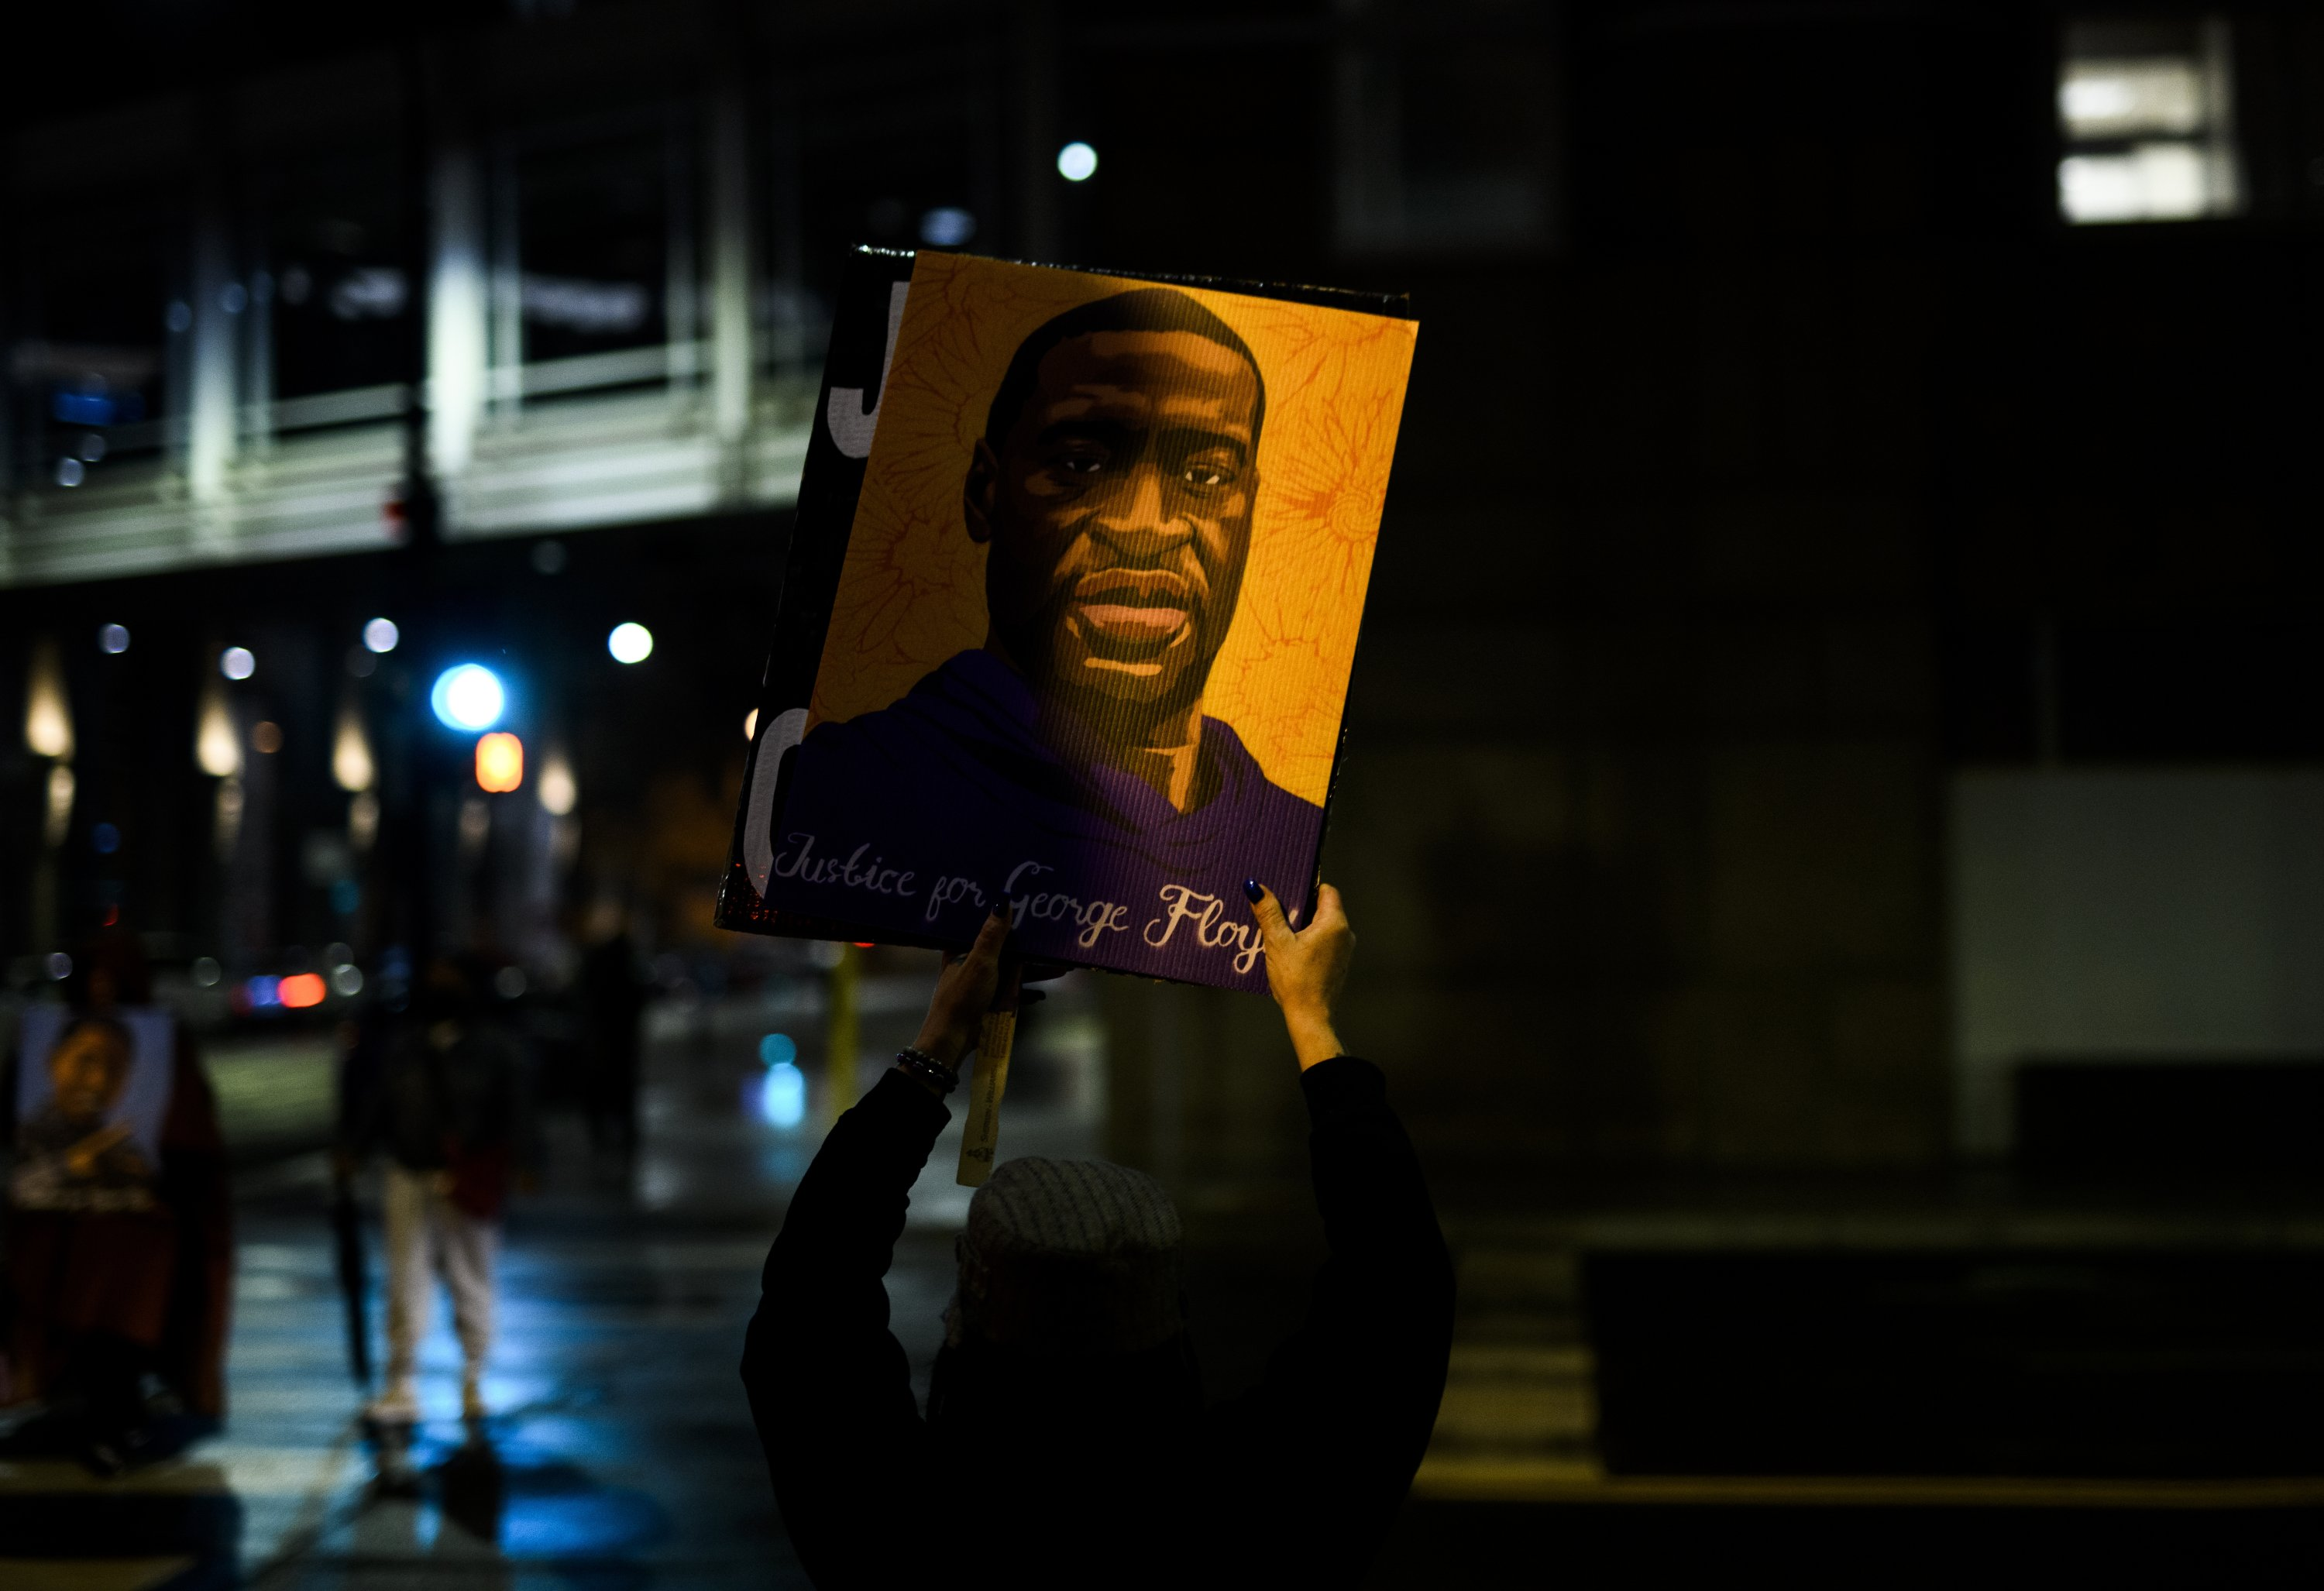 A woman holds up a portrait of George Floyd as people gather outside the Hennepin County Government Center to demand justice for his murder, in Minneapolis, Minnesota, U.S., April 9, 2021. (Photo by Getty Images)